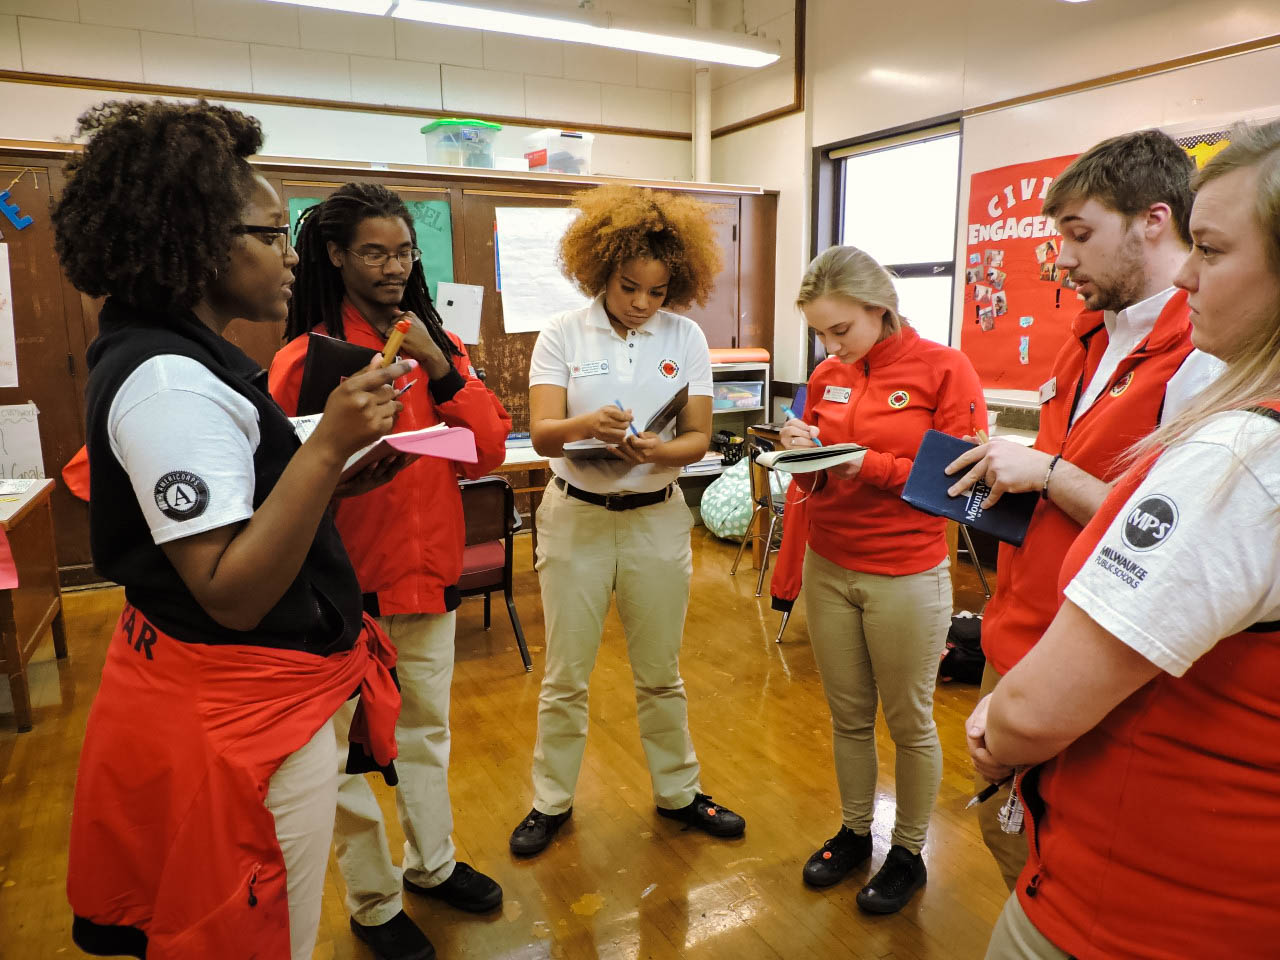 7:30am Opening Circle: Teams arrive at school and begin each day with an opening circle, a City Year tradition to become centered on the day ahead. Joys and Appreciations are shared, announcements are made, and teams set their intention for the day.